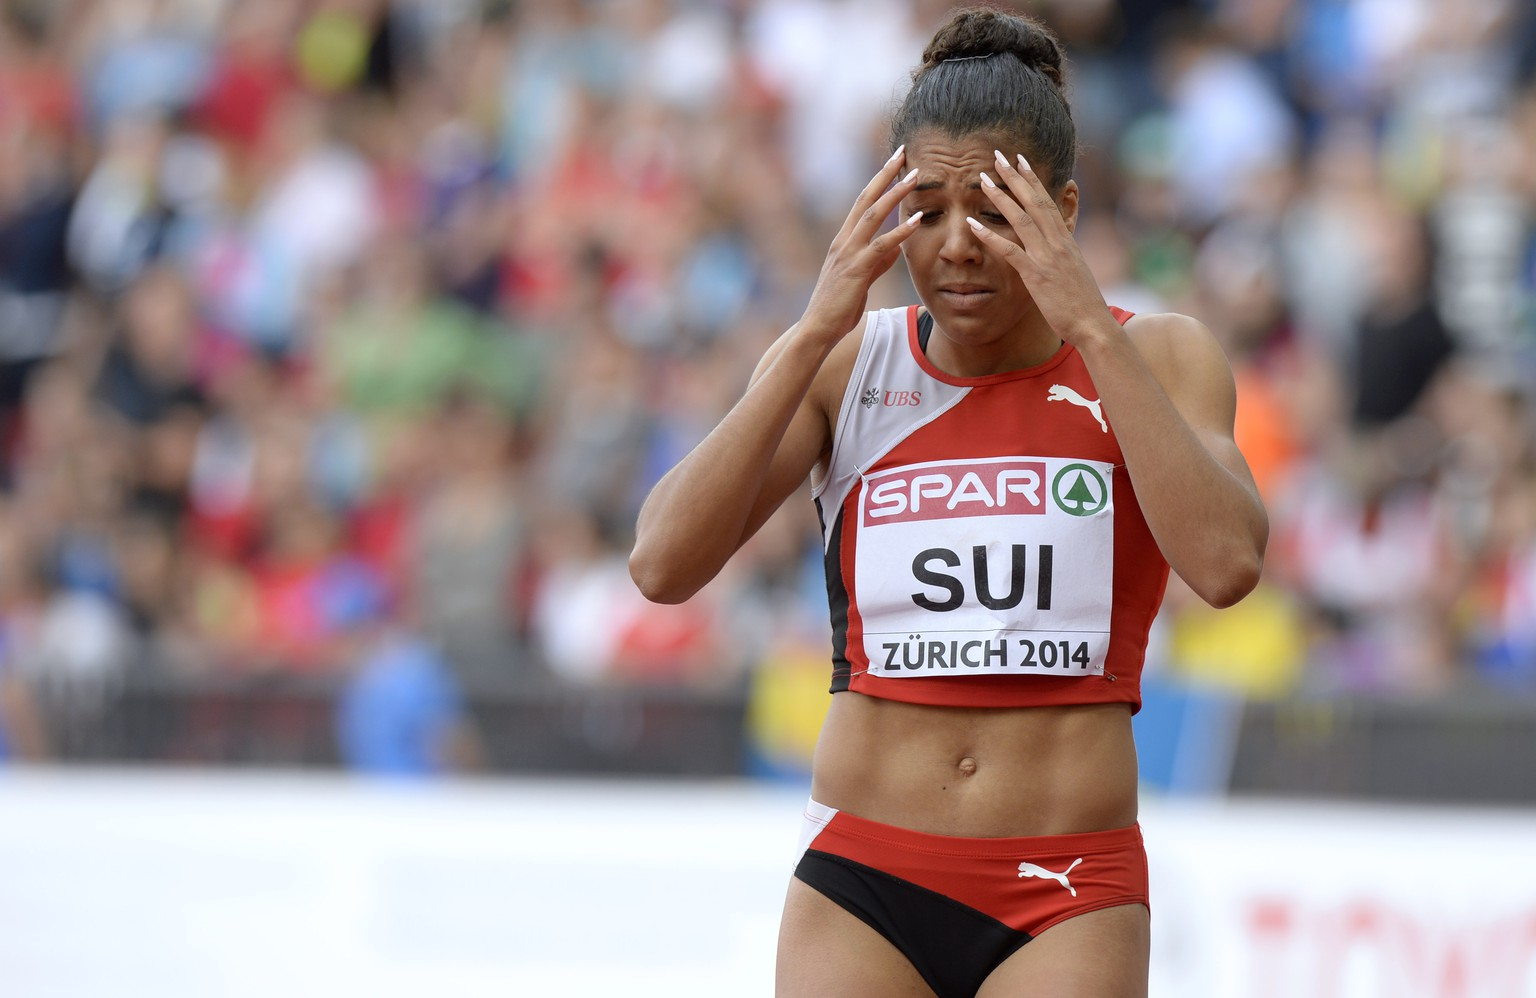 Switzerland's Mujinga Kambundji reacts after she lost the baton at the start, of the women's 4x100m relay round 1 race, at the sixth day of the European Athletics Championships in the Letzigrund Stadium in Zurich, Switzerland, Sunday, August 17, 2014. (KEYSTONE/Steffen Schmidt)